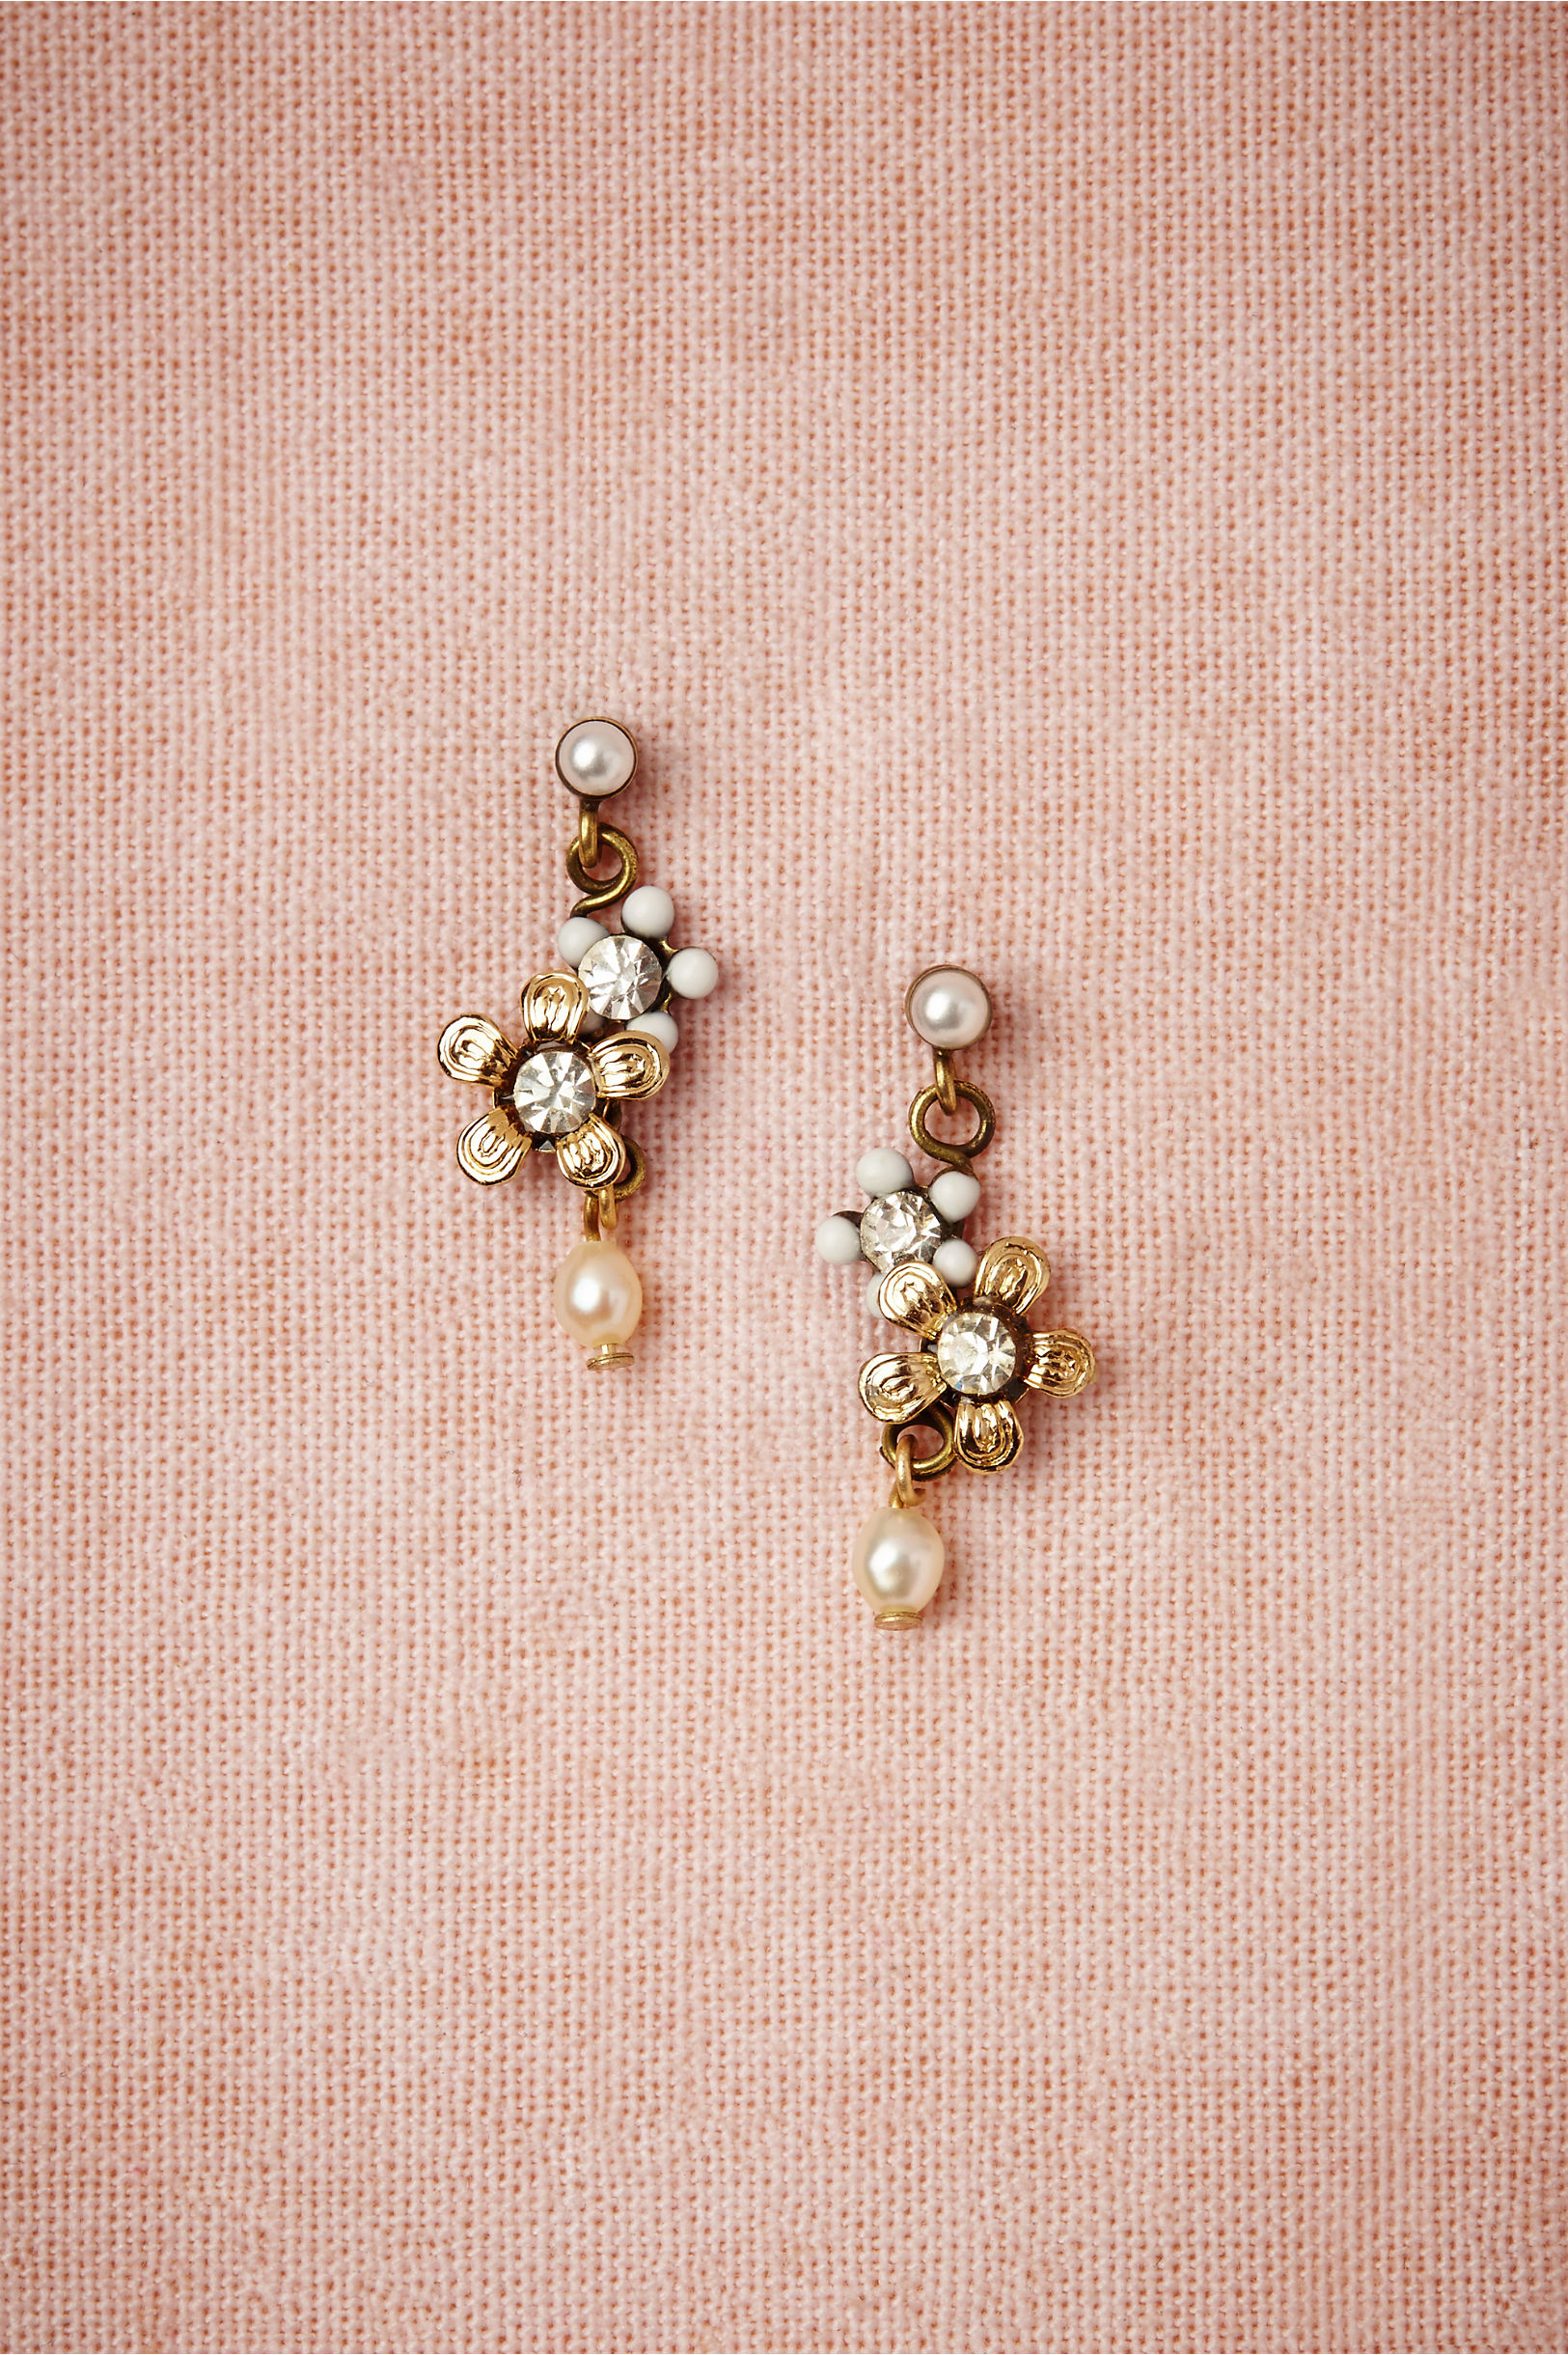 Droplet Earrings in Shoes & Accessories   BHLDN